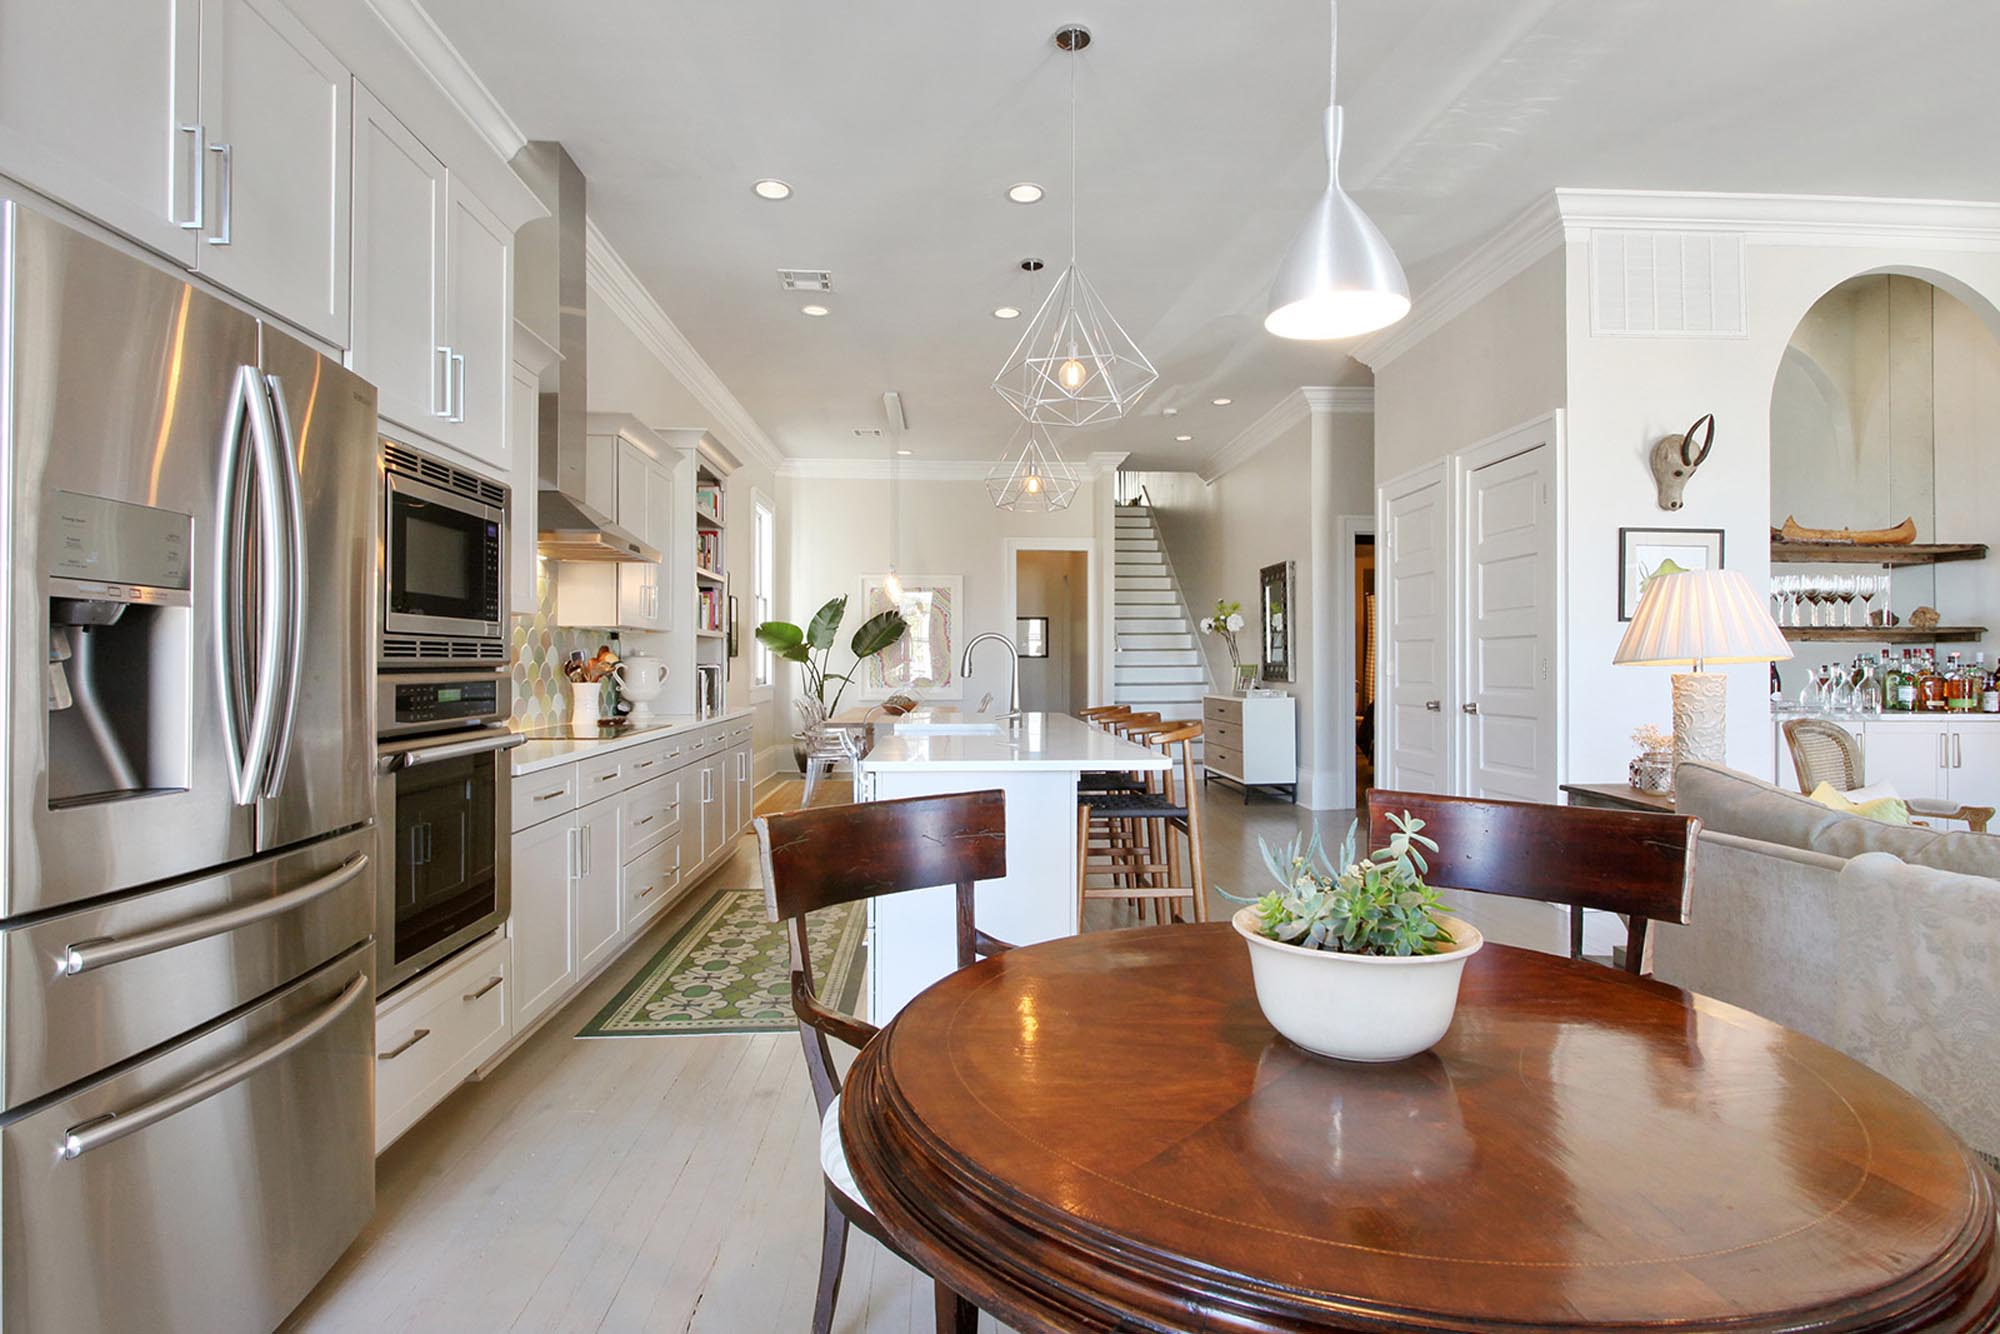 Breakfast nook and kitchen areas with modern appliances